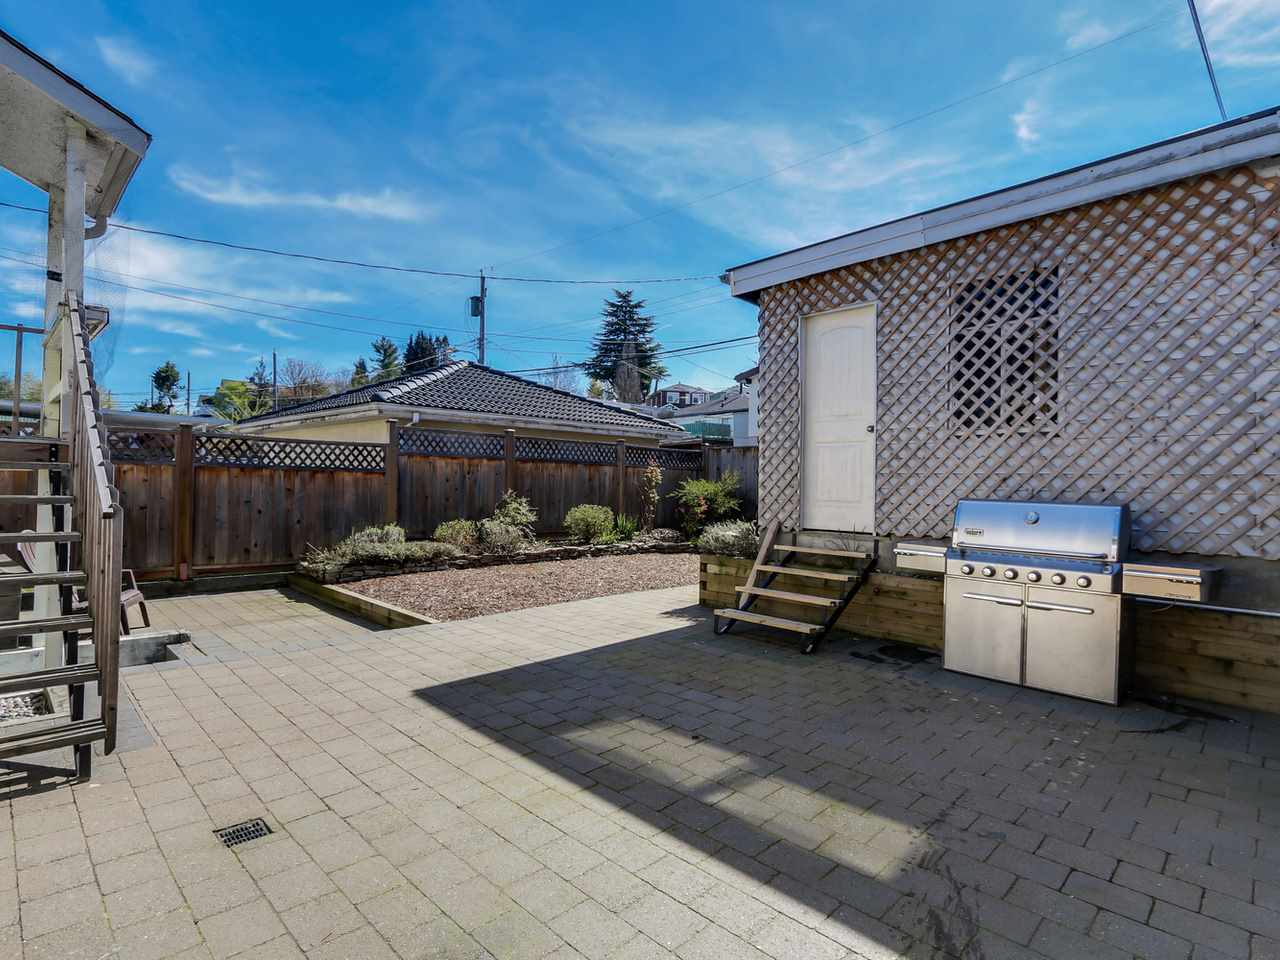 Photo 16: 2542 E 28TH AVENUE in Vancouver: Collingwood VE House for sale (Vancouver East)  : MLS® # R2052154